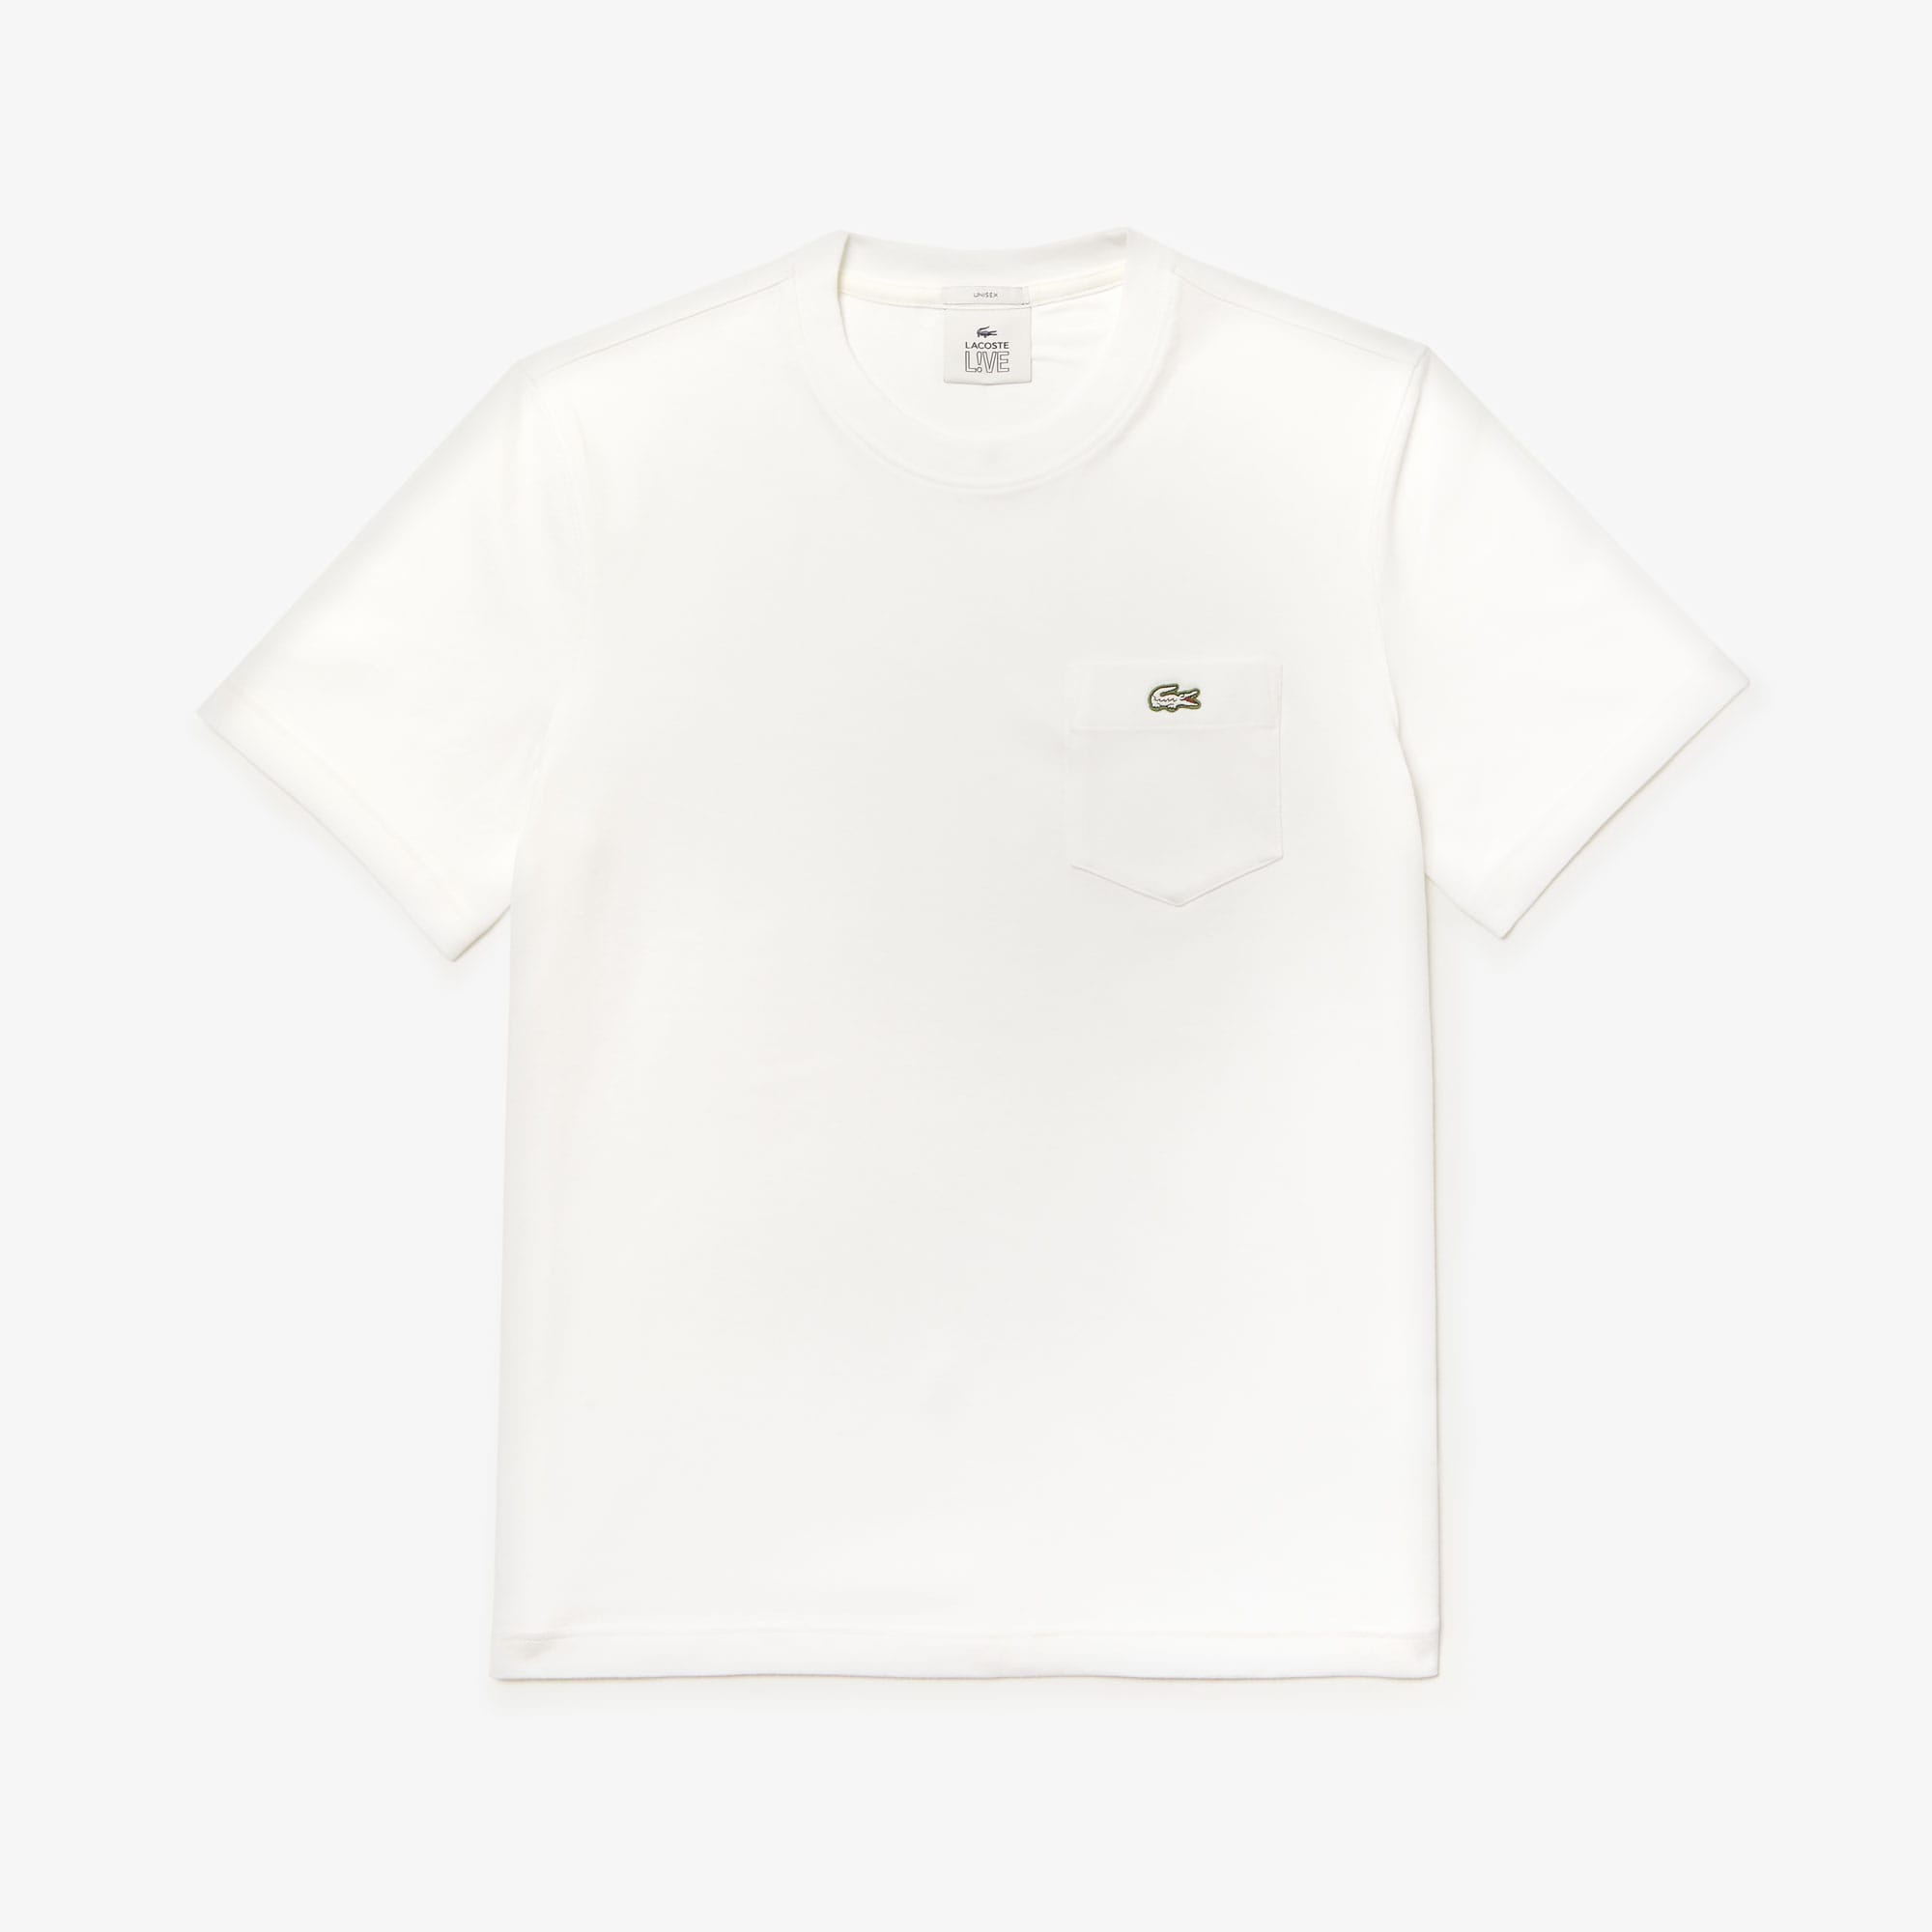 Unisex Lacoste LIVE Pocket Heathered Cotton T-shirt